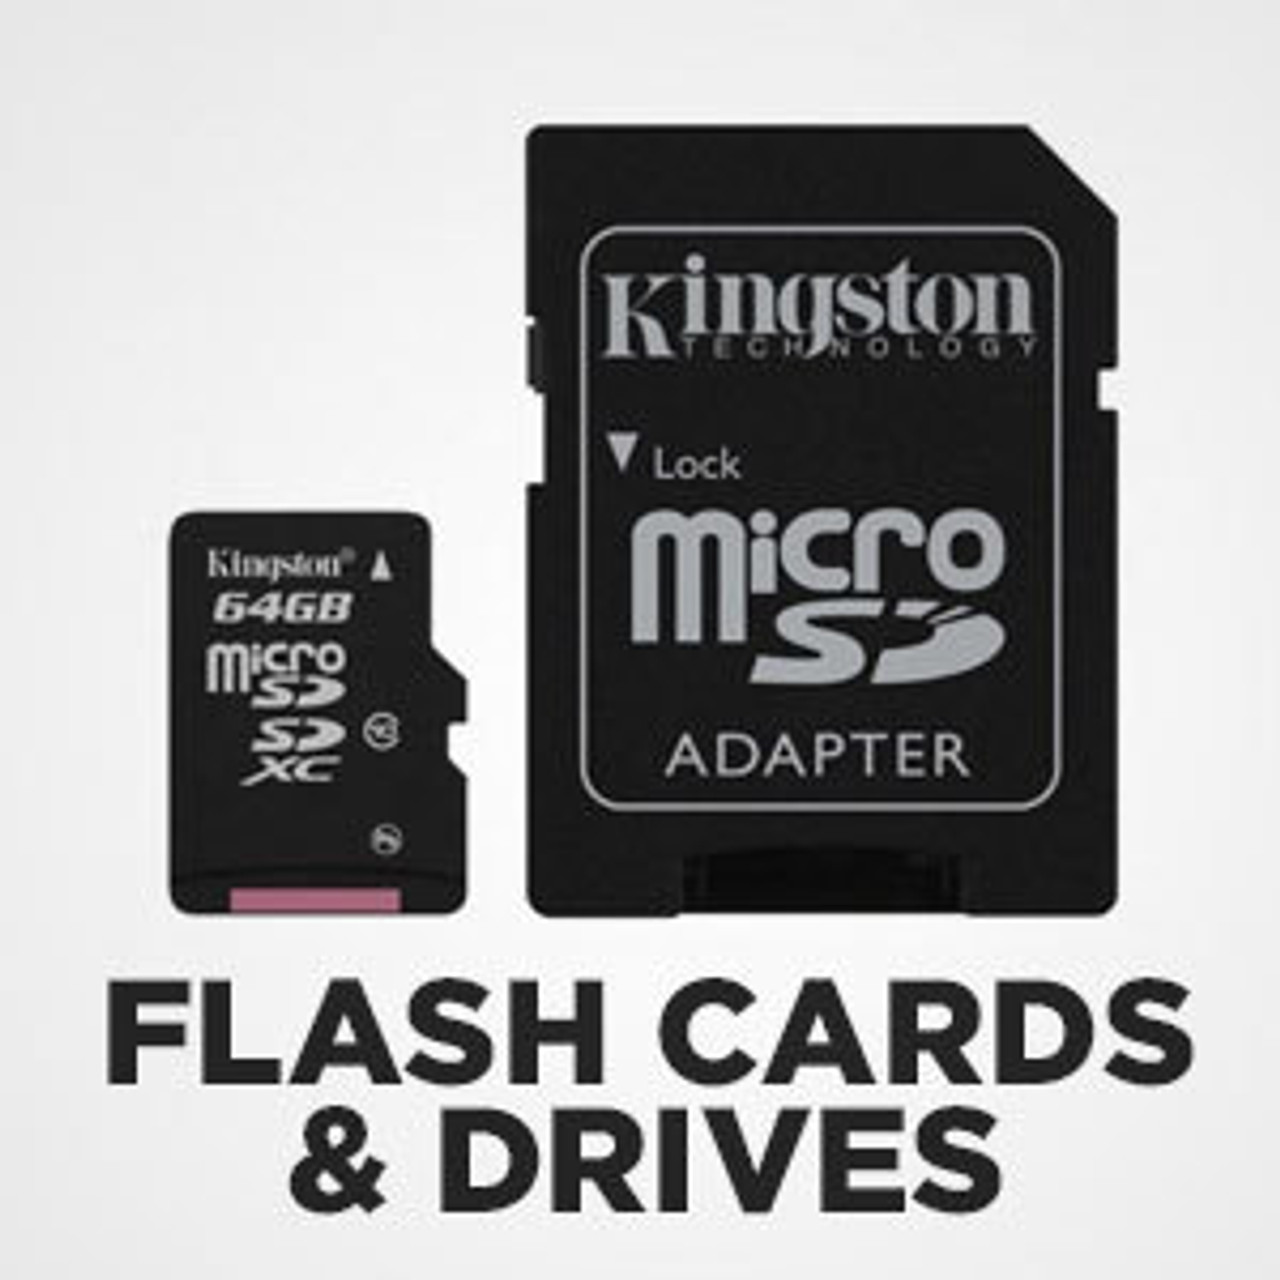 Flash Cards & Drives